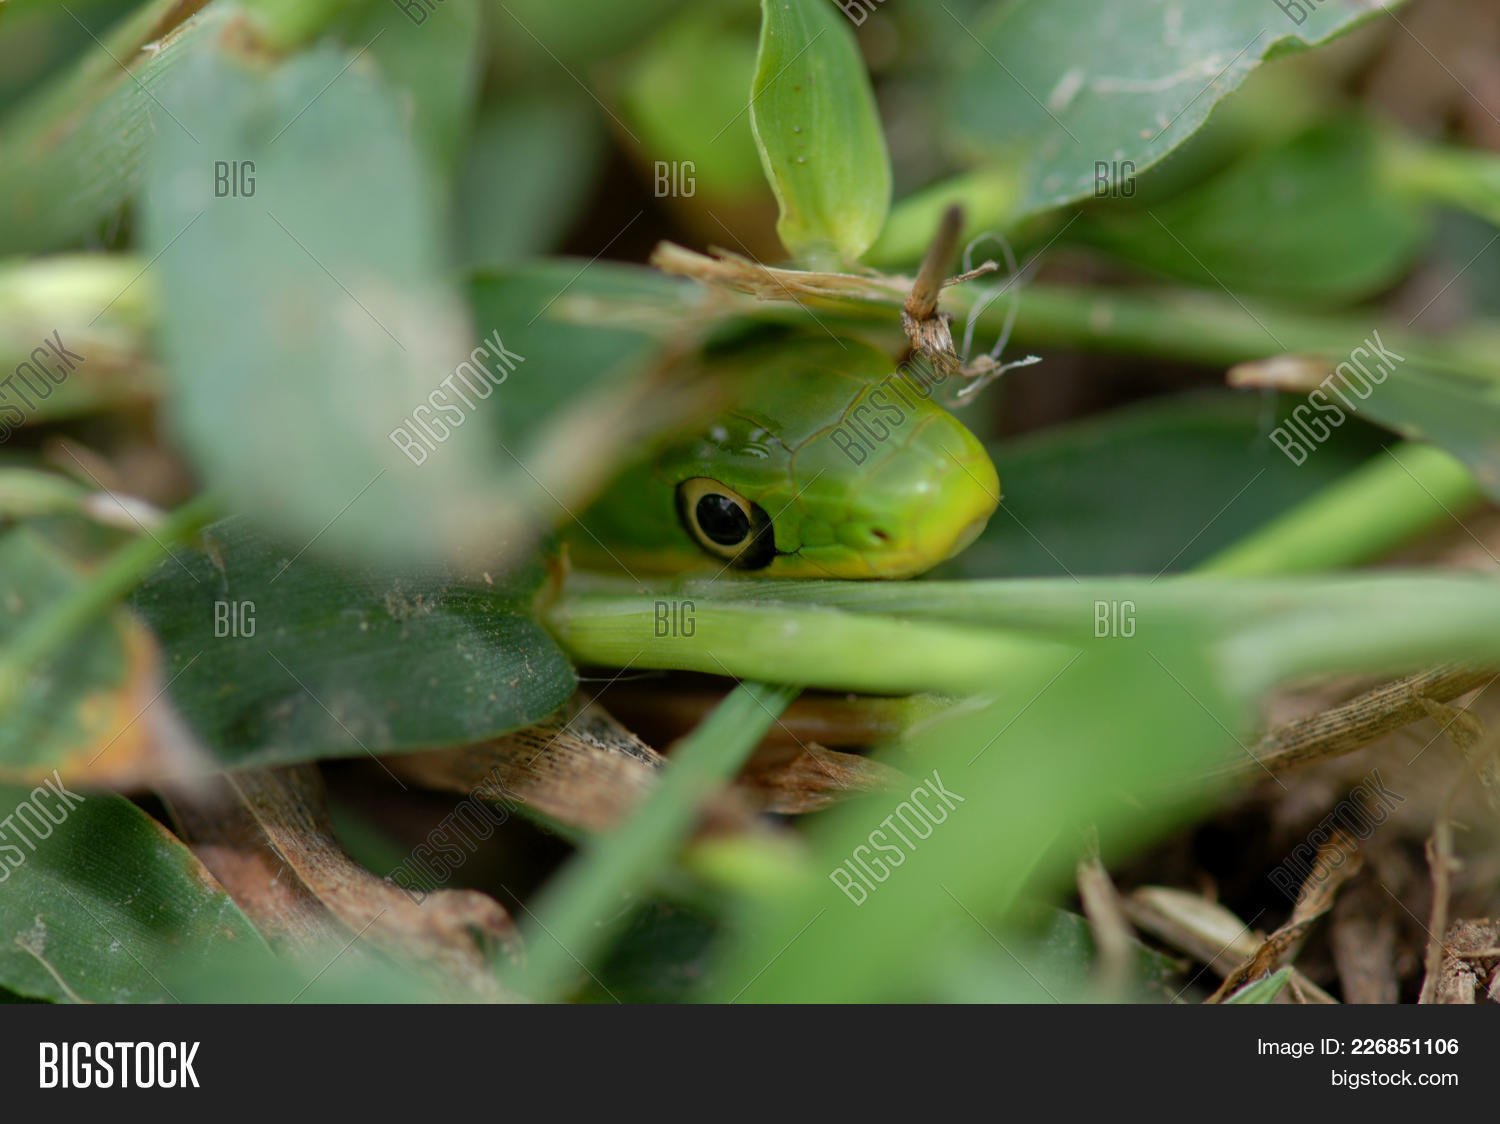 A Small Rough Green Snake Crawling Through The Grass With Only